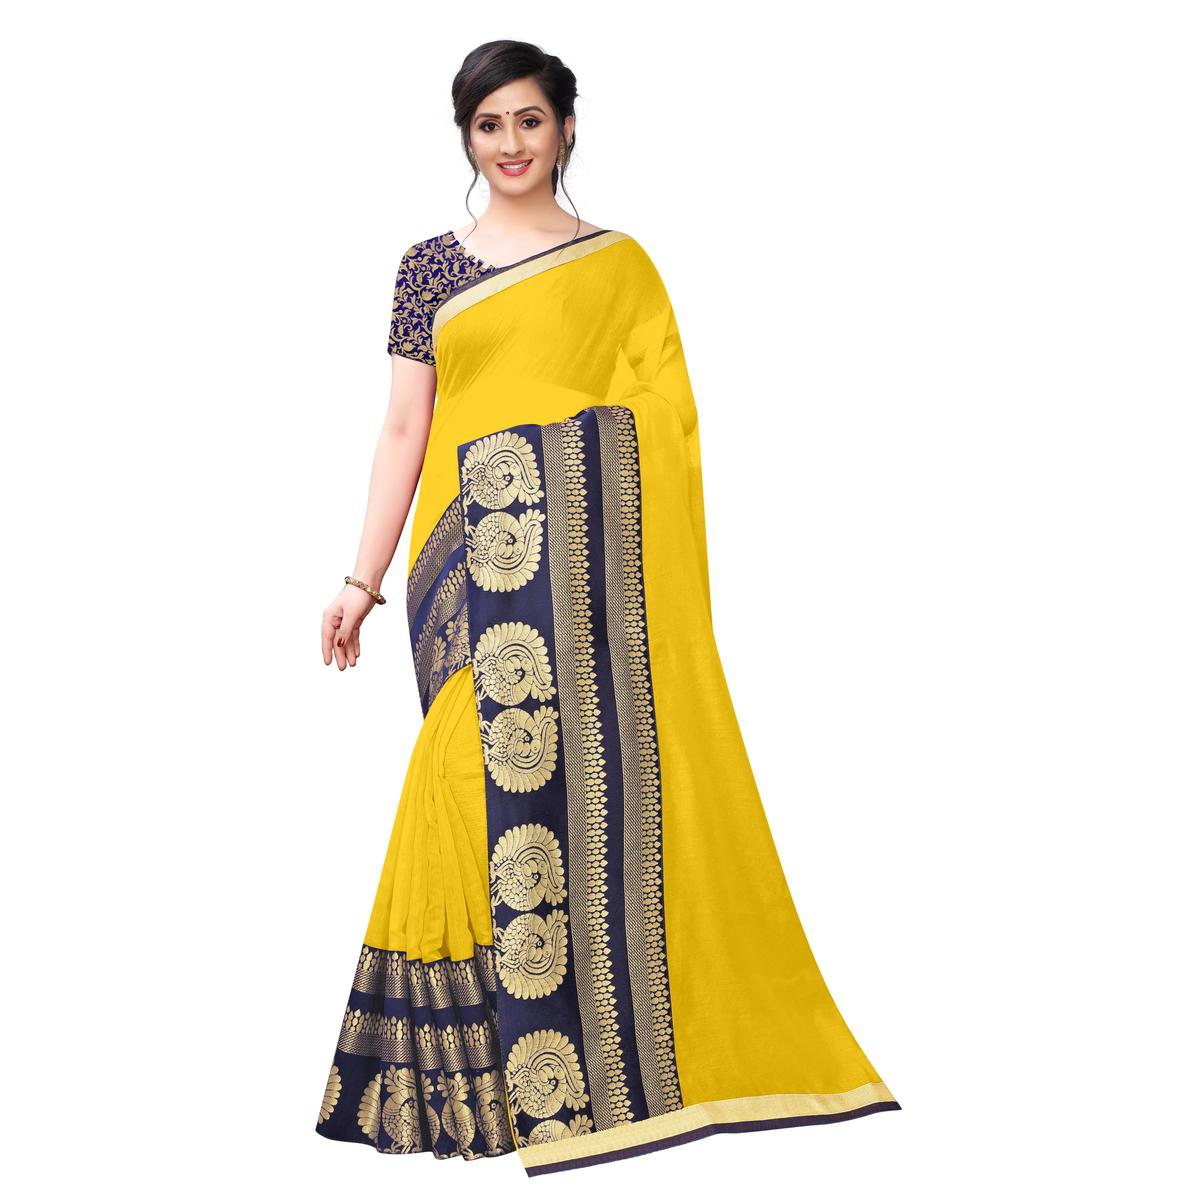 Wazood - Yellow Colored Festive Wear Jacquard Lace Chanderi Cotton Silk Saree